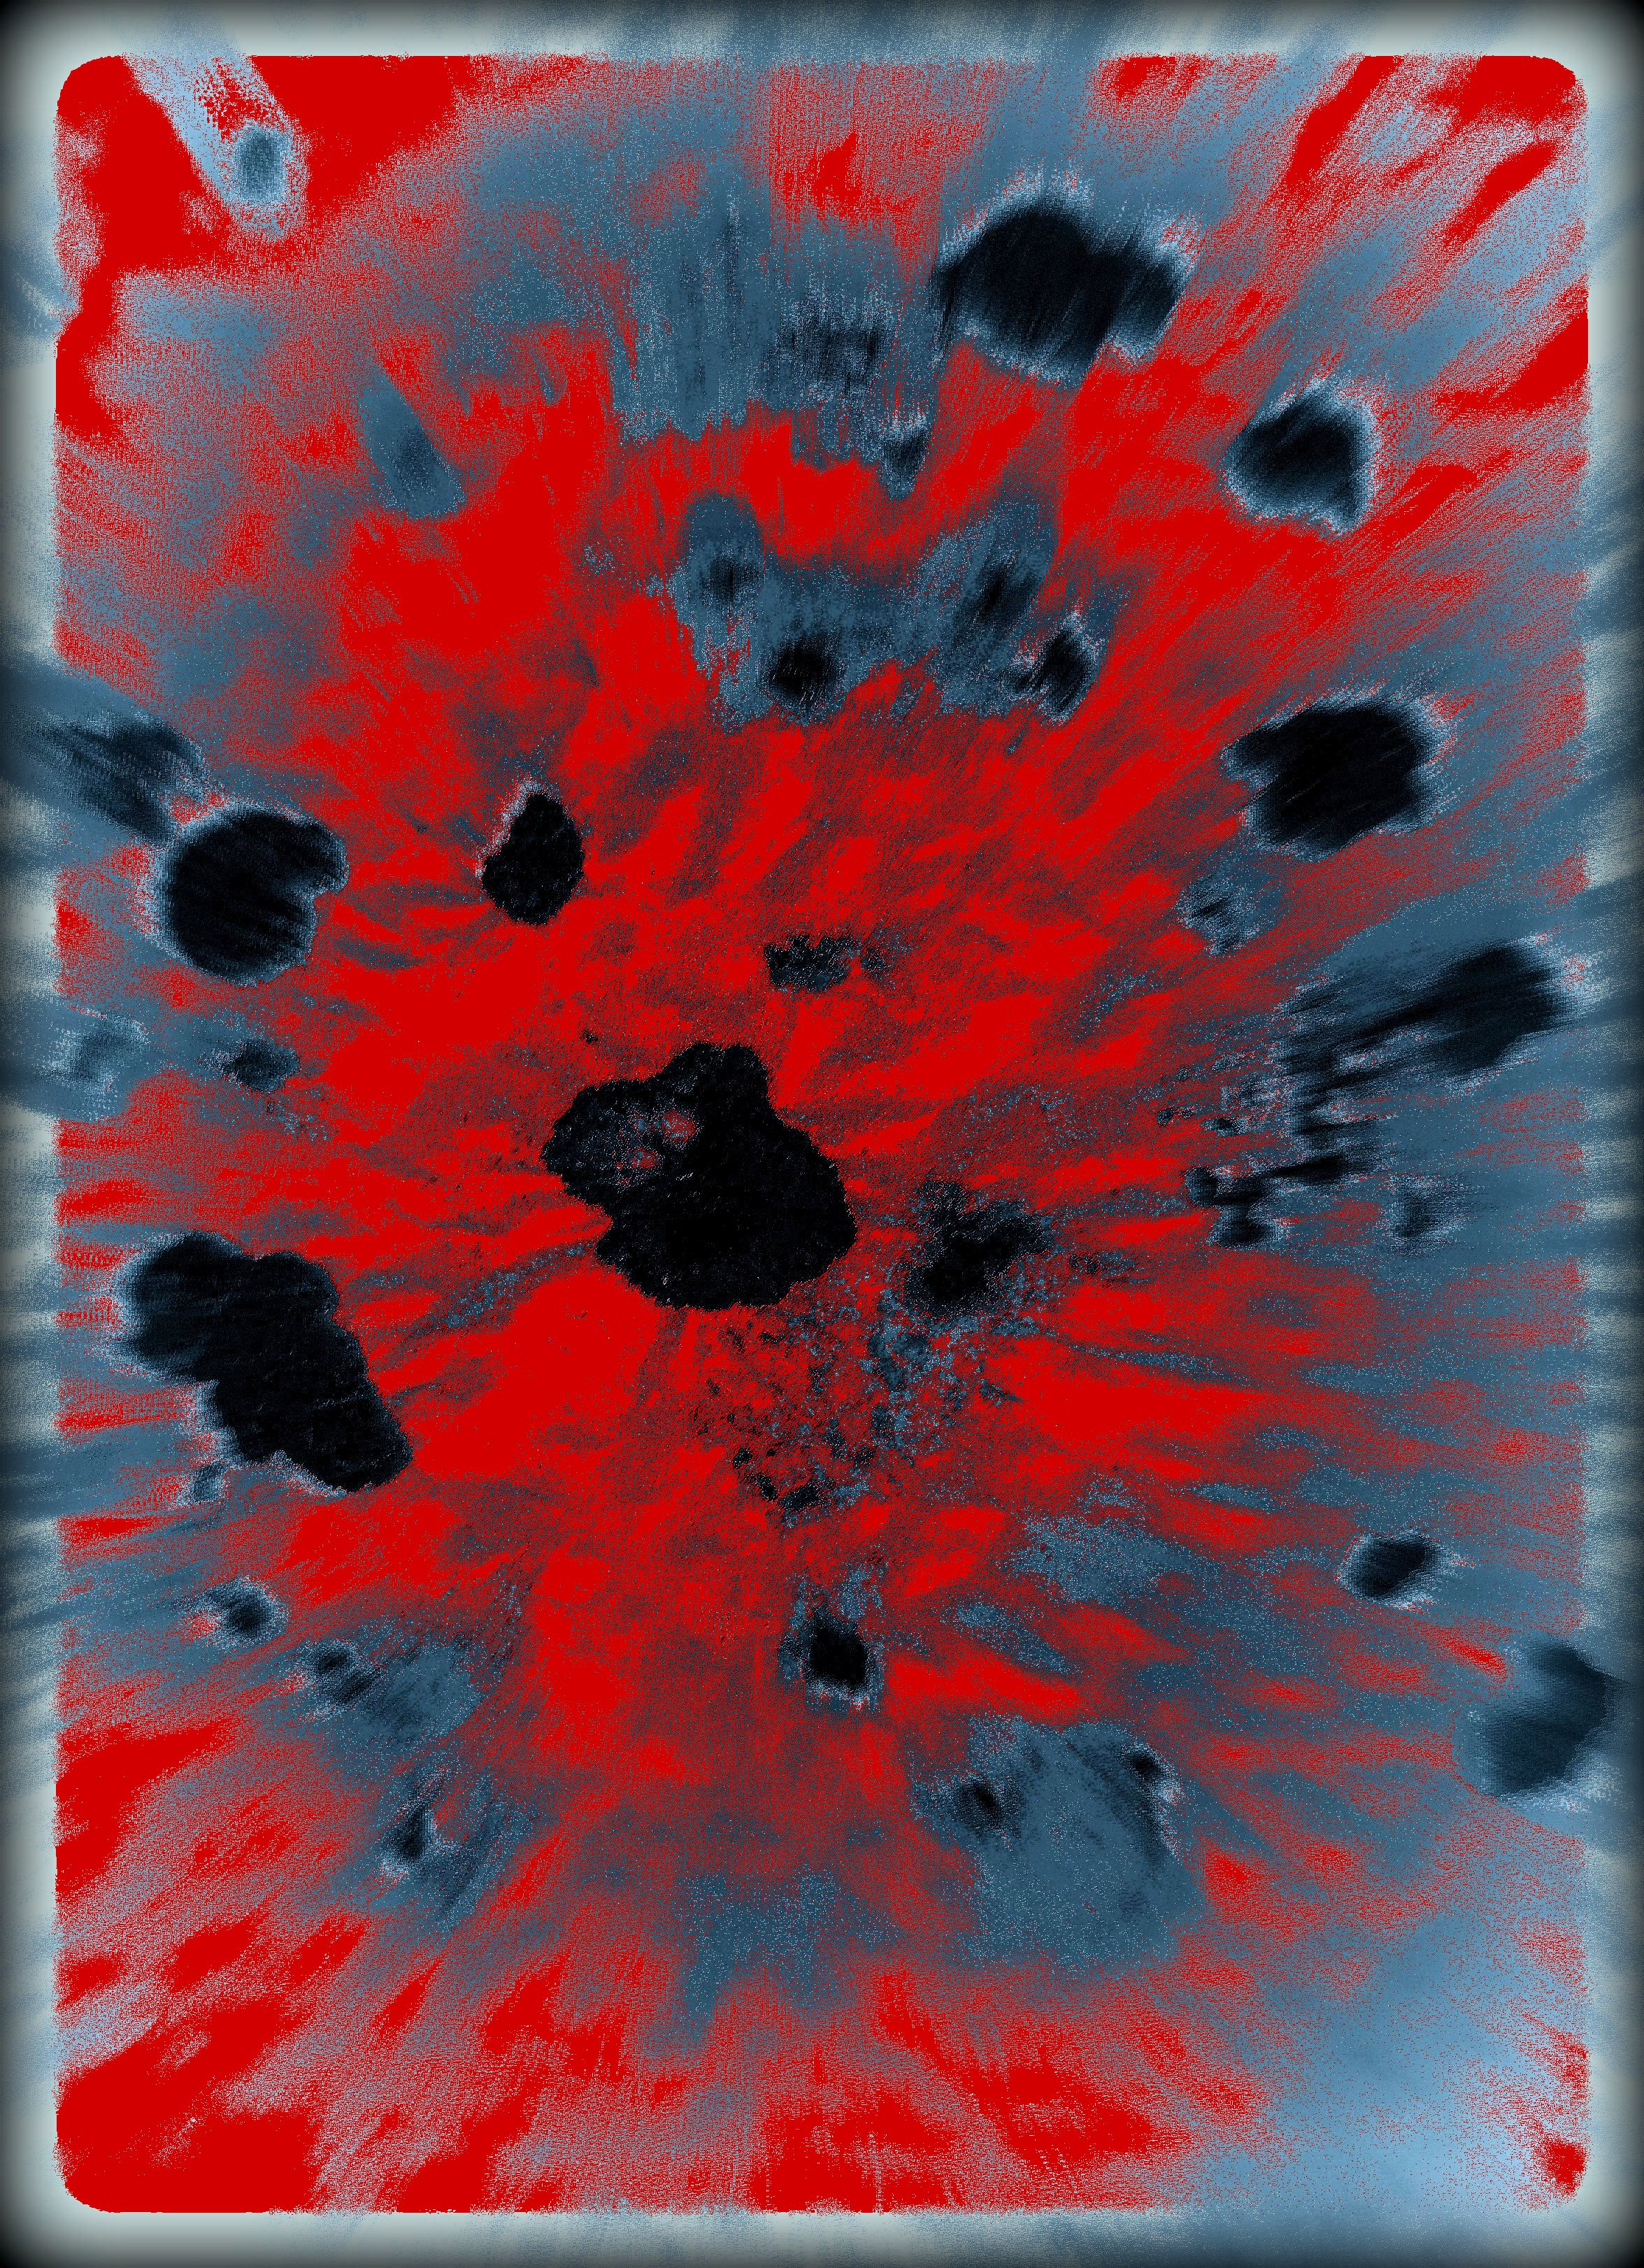 bloodblot